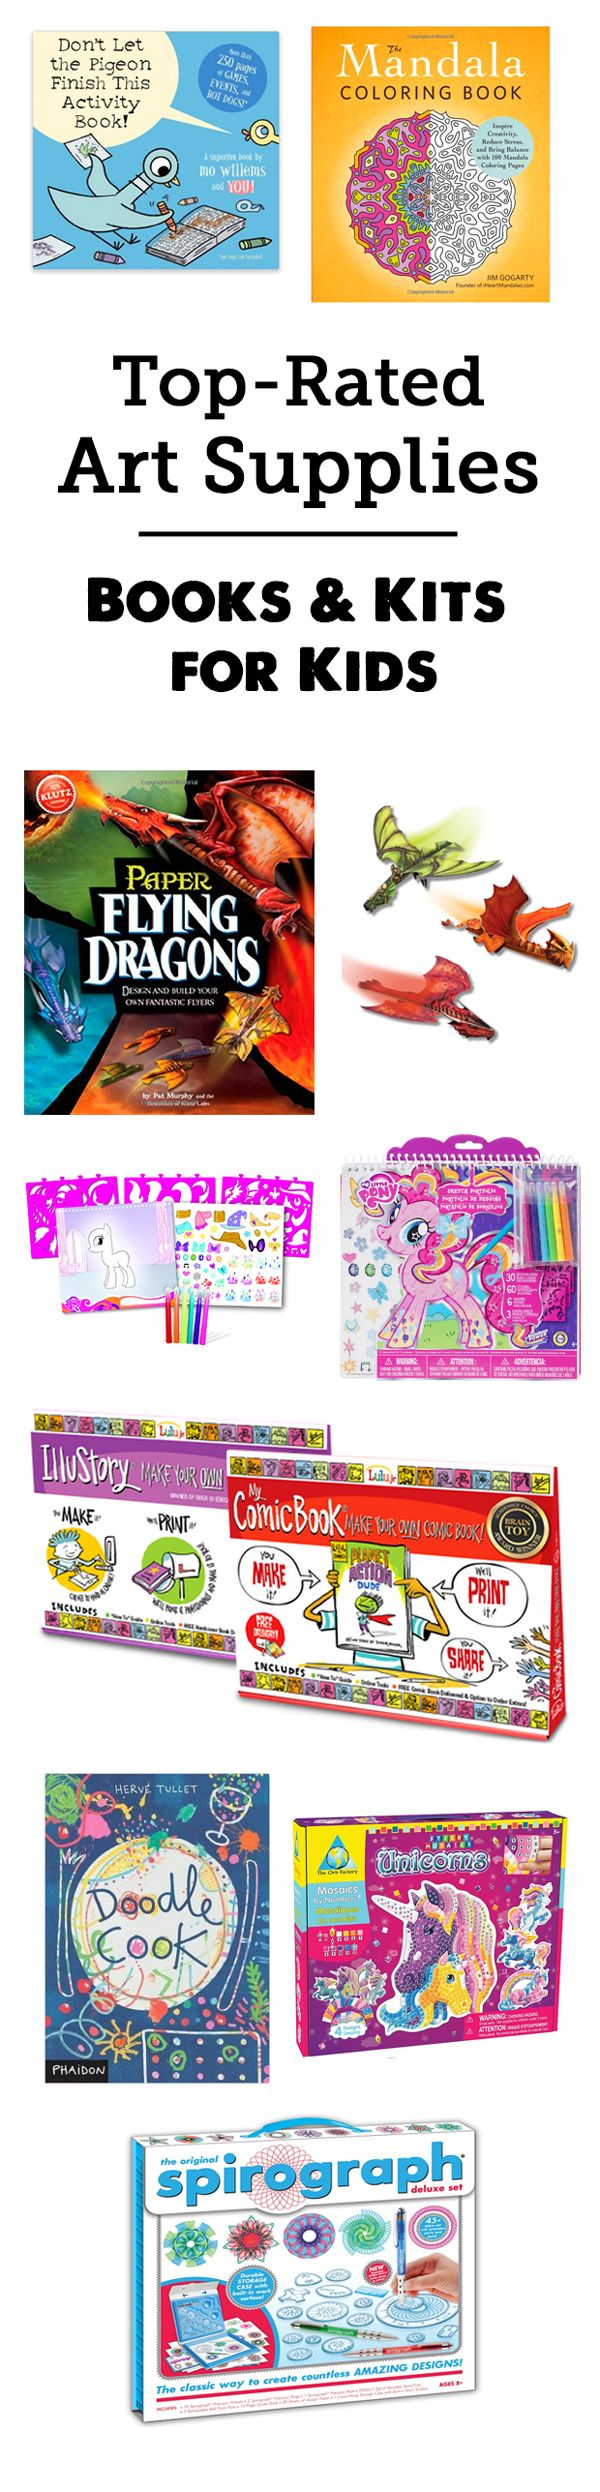 Kids Gift Guide: Best Art Supplies for Kids - So many cool and interesting picks here, love the age recommendations and detailed reviews.: